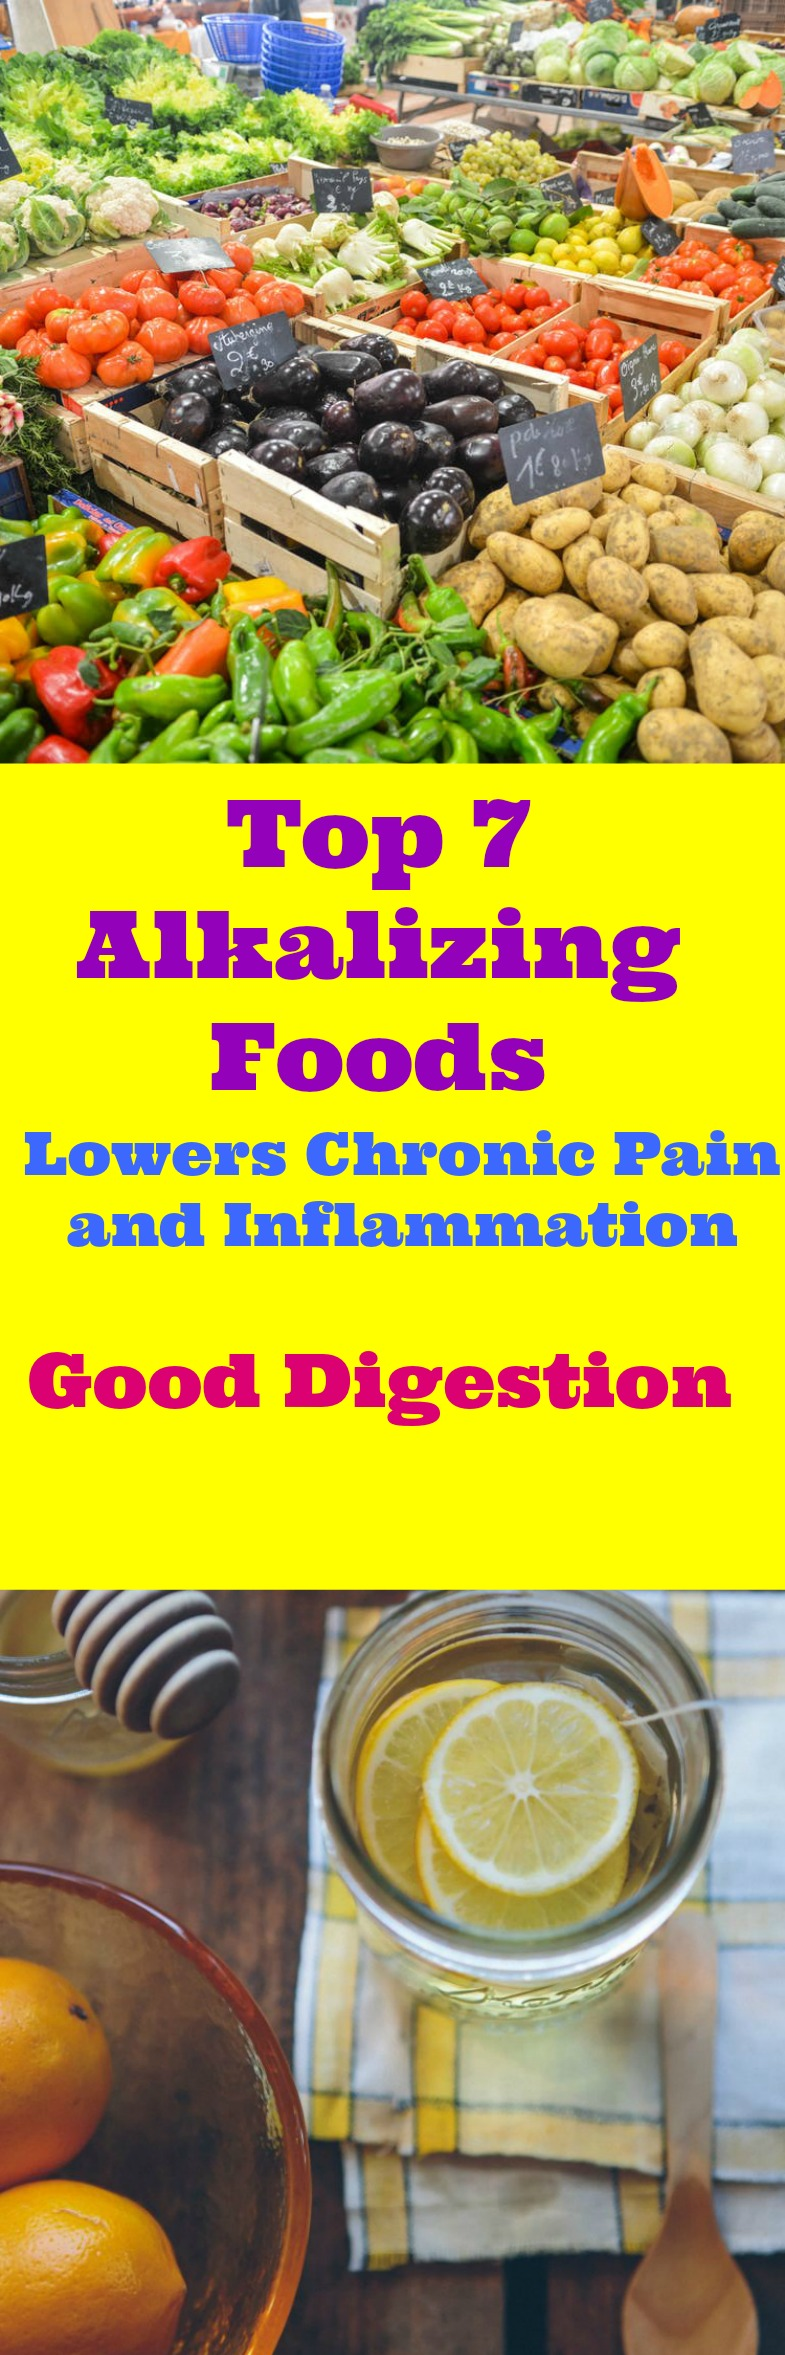 Top 7 Alkalizing Foods to include in your diet. An Alkaline Diet is wonderful for weight loss. The body needs additional health and fitness needs as well.